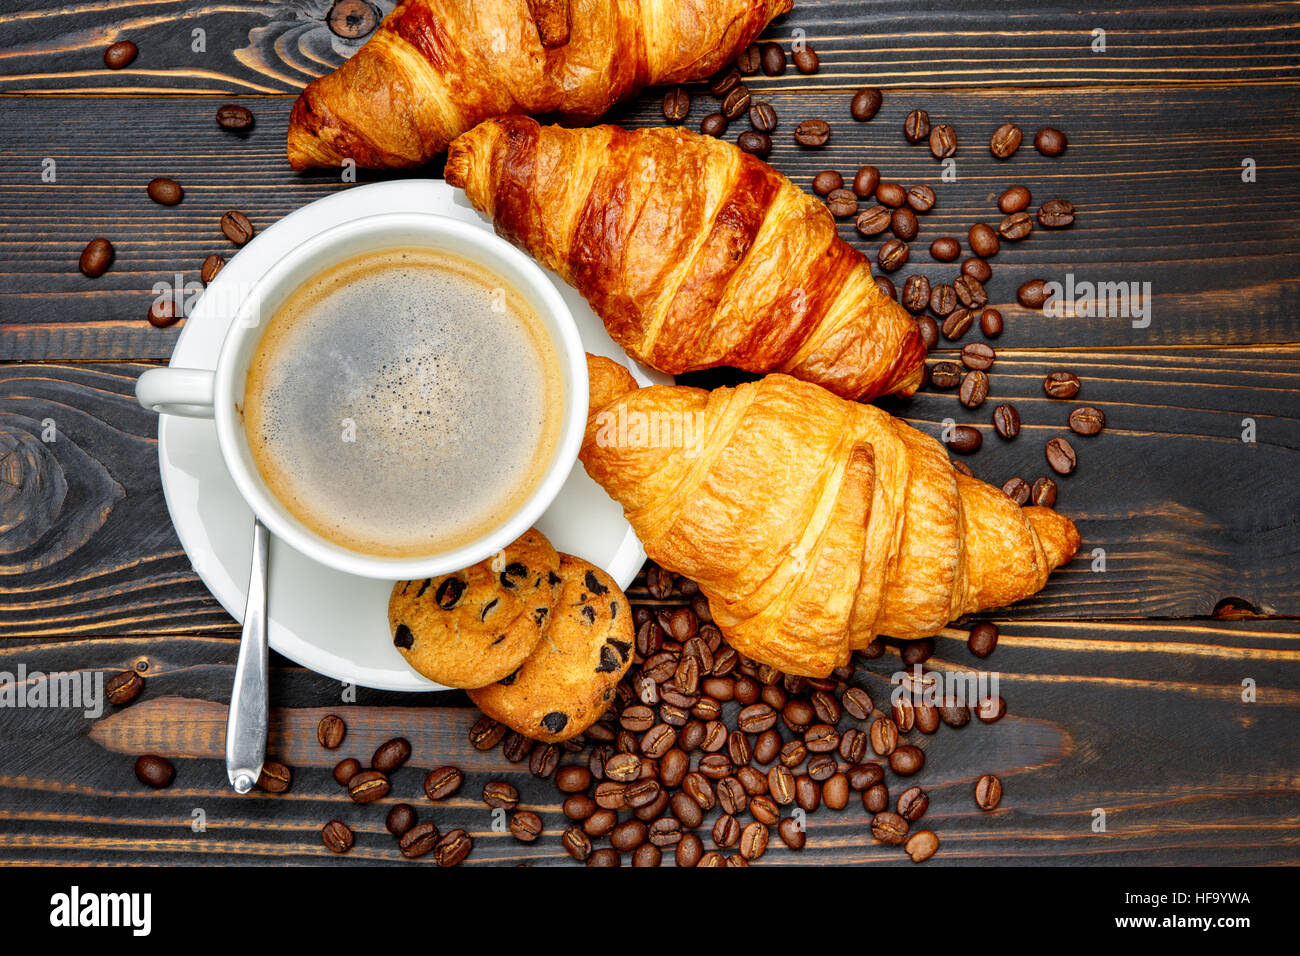 cup of coffe and croissant on wooden background - Stock Image